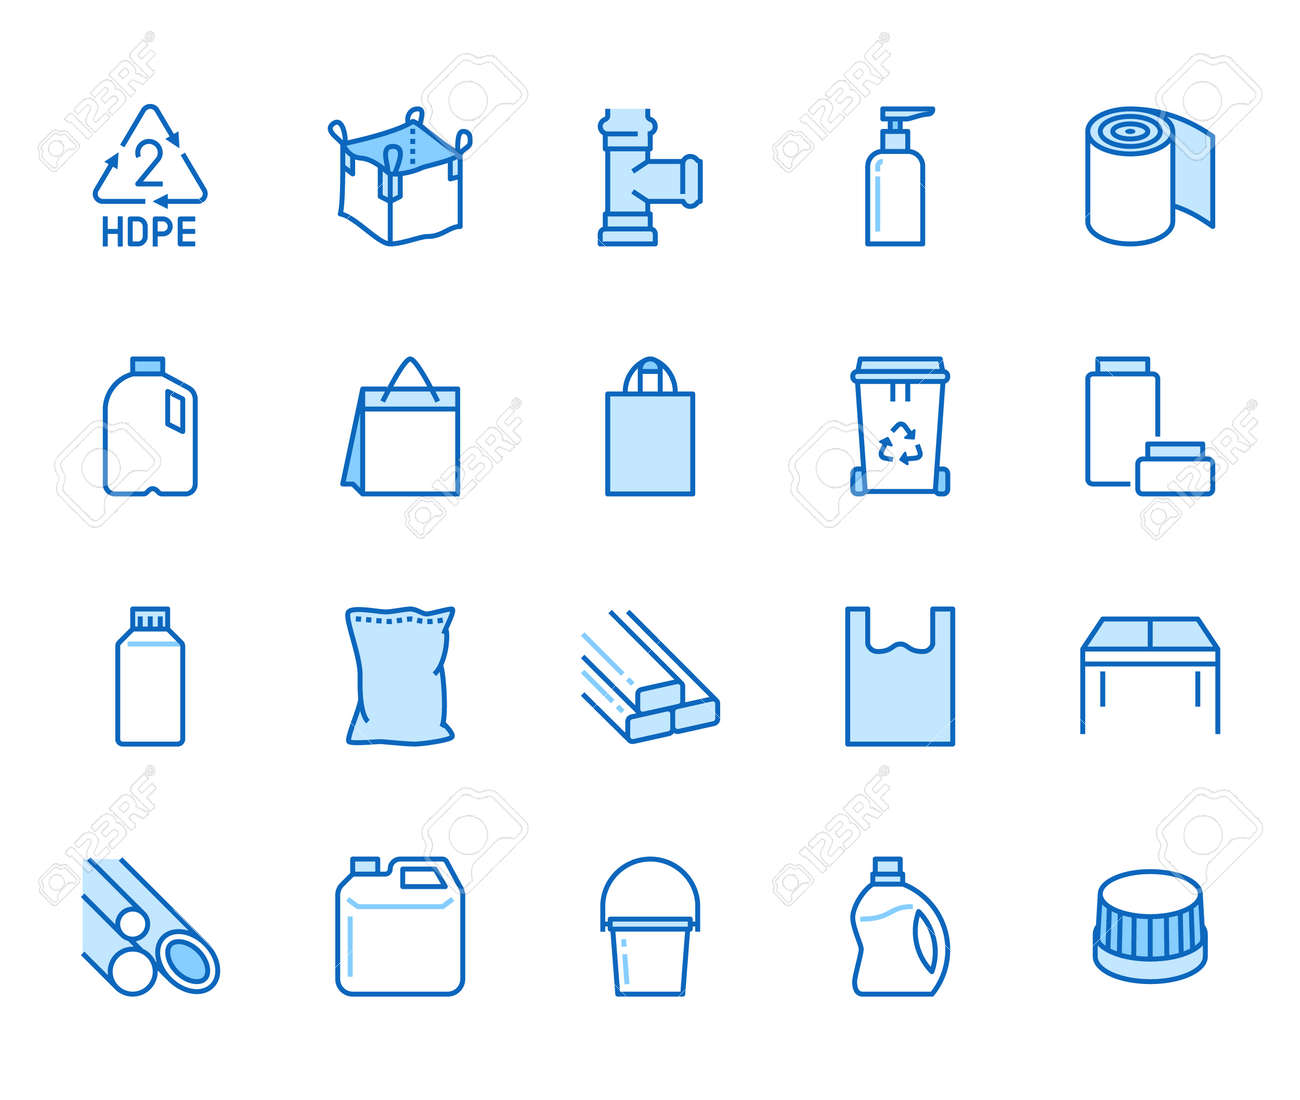 High density polyethylene flat line icons. HDPE products - jerry can, plastic canister, pipes, milk jug, garbage container vector illustrations. Thin signs of packaging. Blue color, Editable Stroke. - 163160950